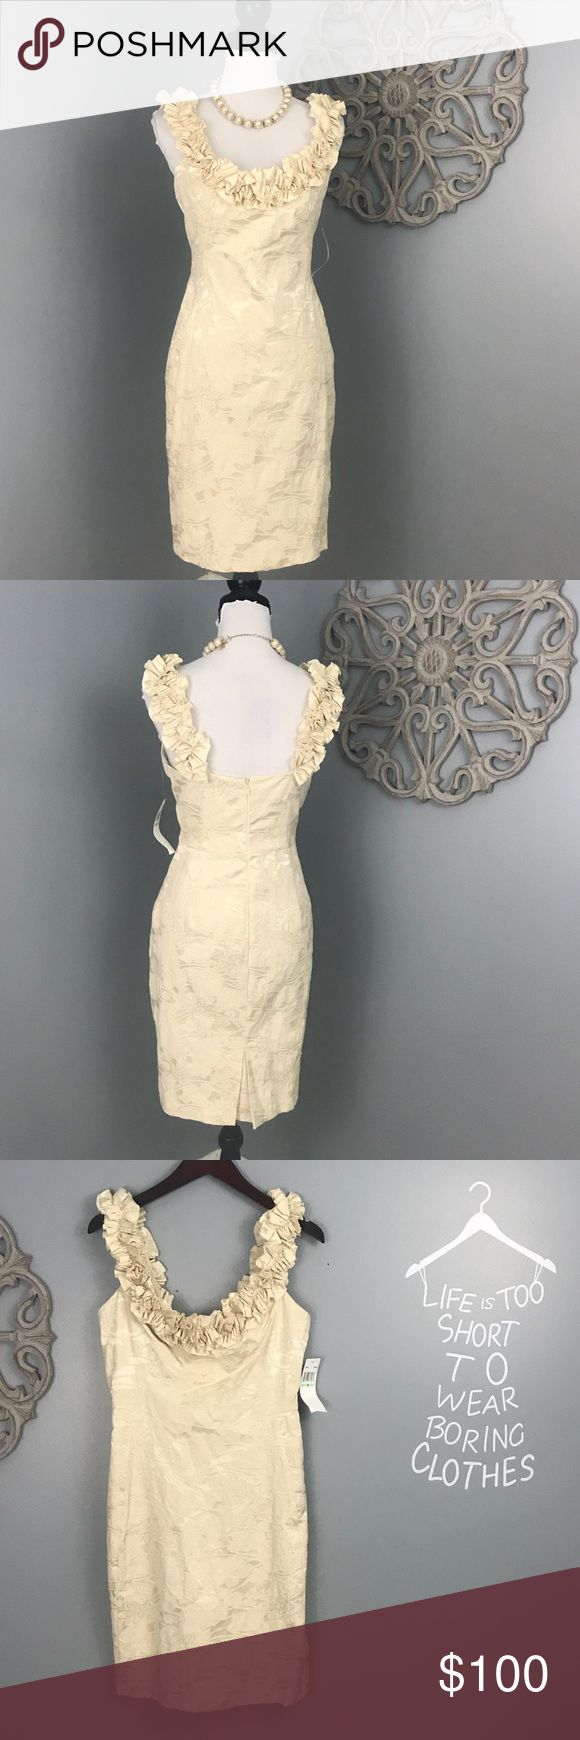 Maggie London | Exquisite Cream Cocktail Dress NWT Exquisite Maggie London Cream baroque cocktail dress.  Has rosettes around the front and back neckline.  NWT Maggy London Dresses